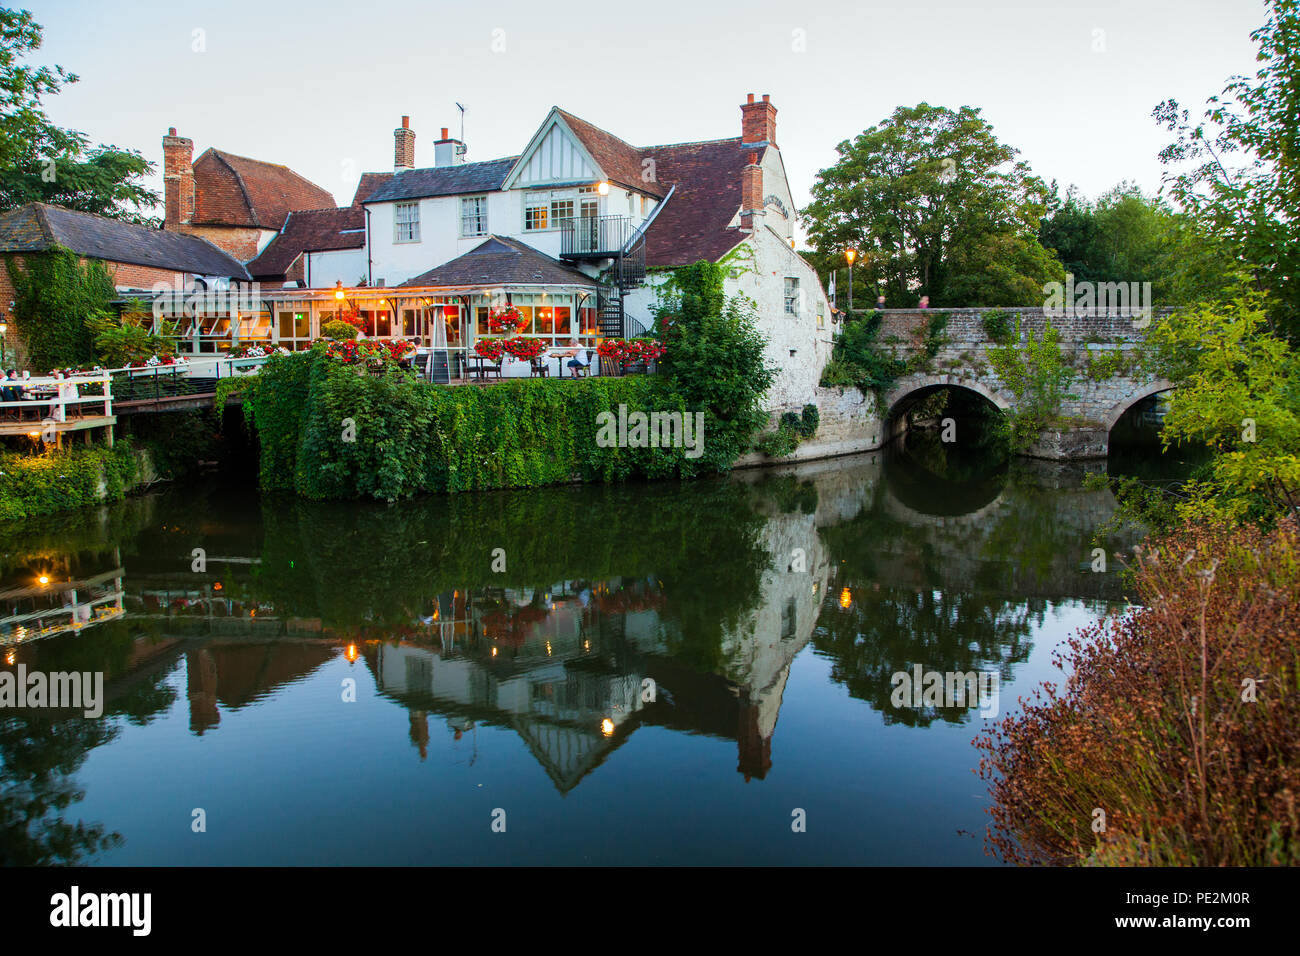 The Nags Head pub on the bridge over Nags head island in the river Thames at Abingdon  on Thames Oxfordshire floodlit  in the evening light - Stock Image